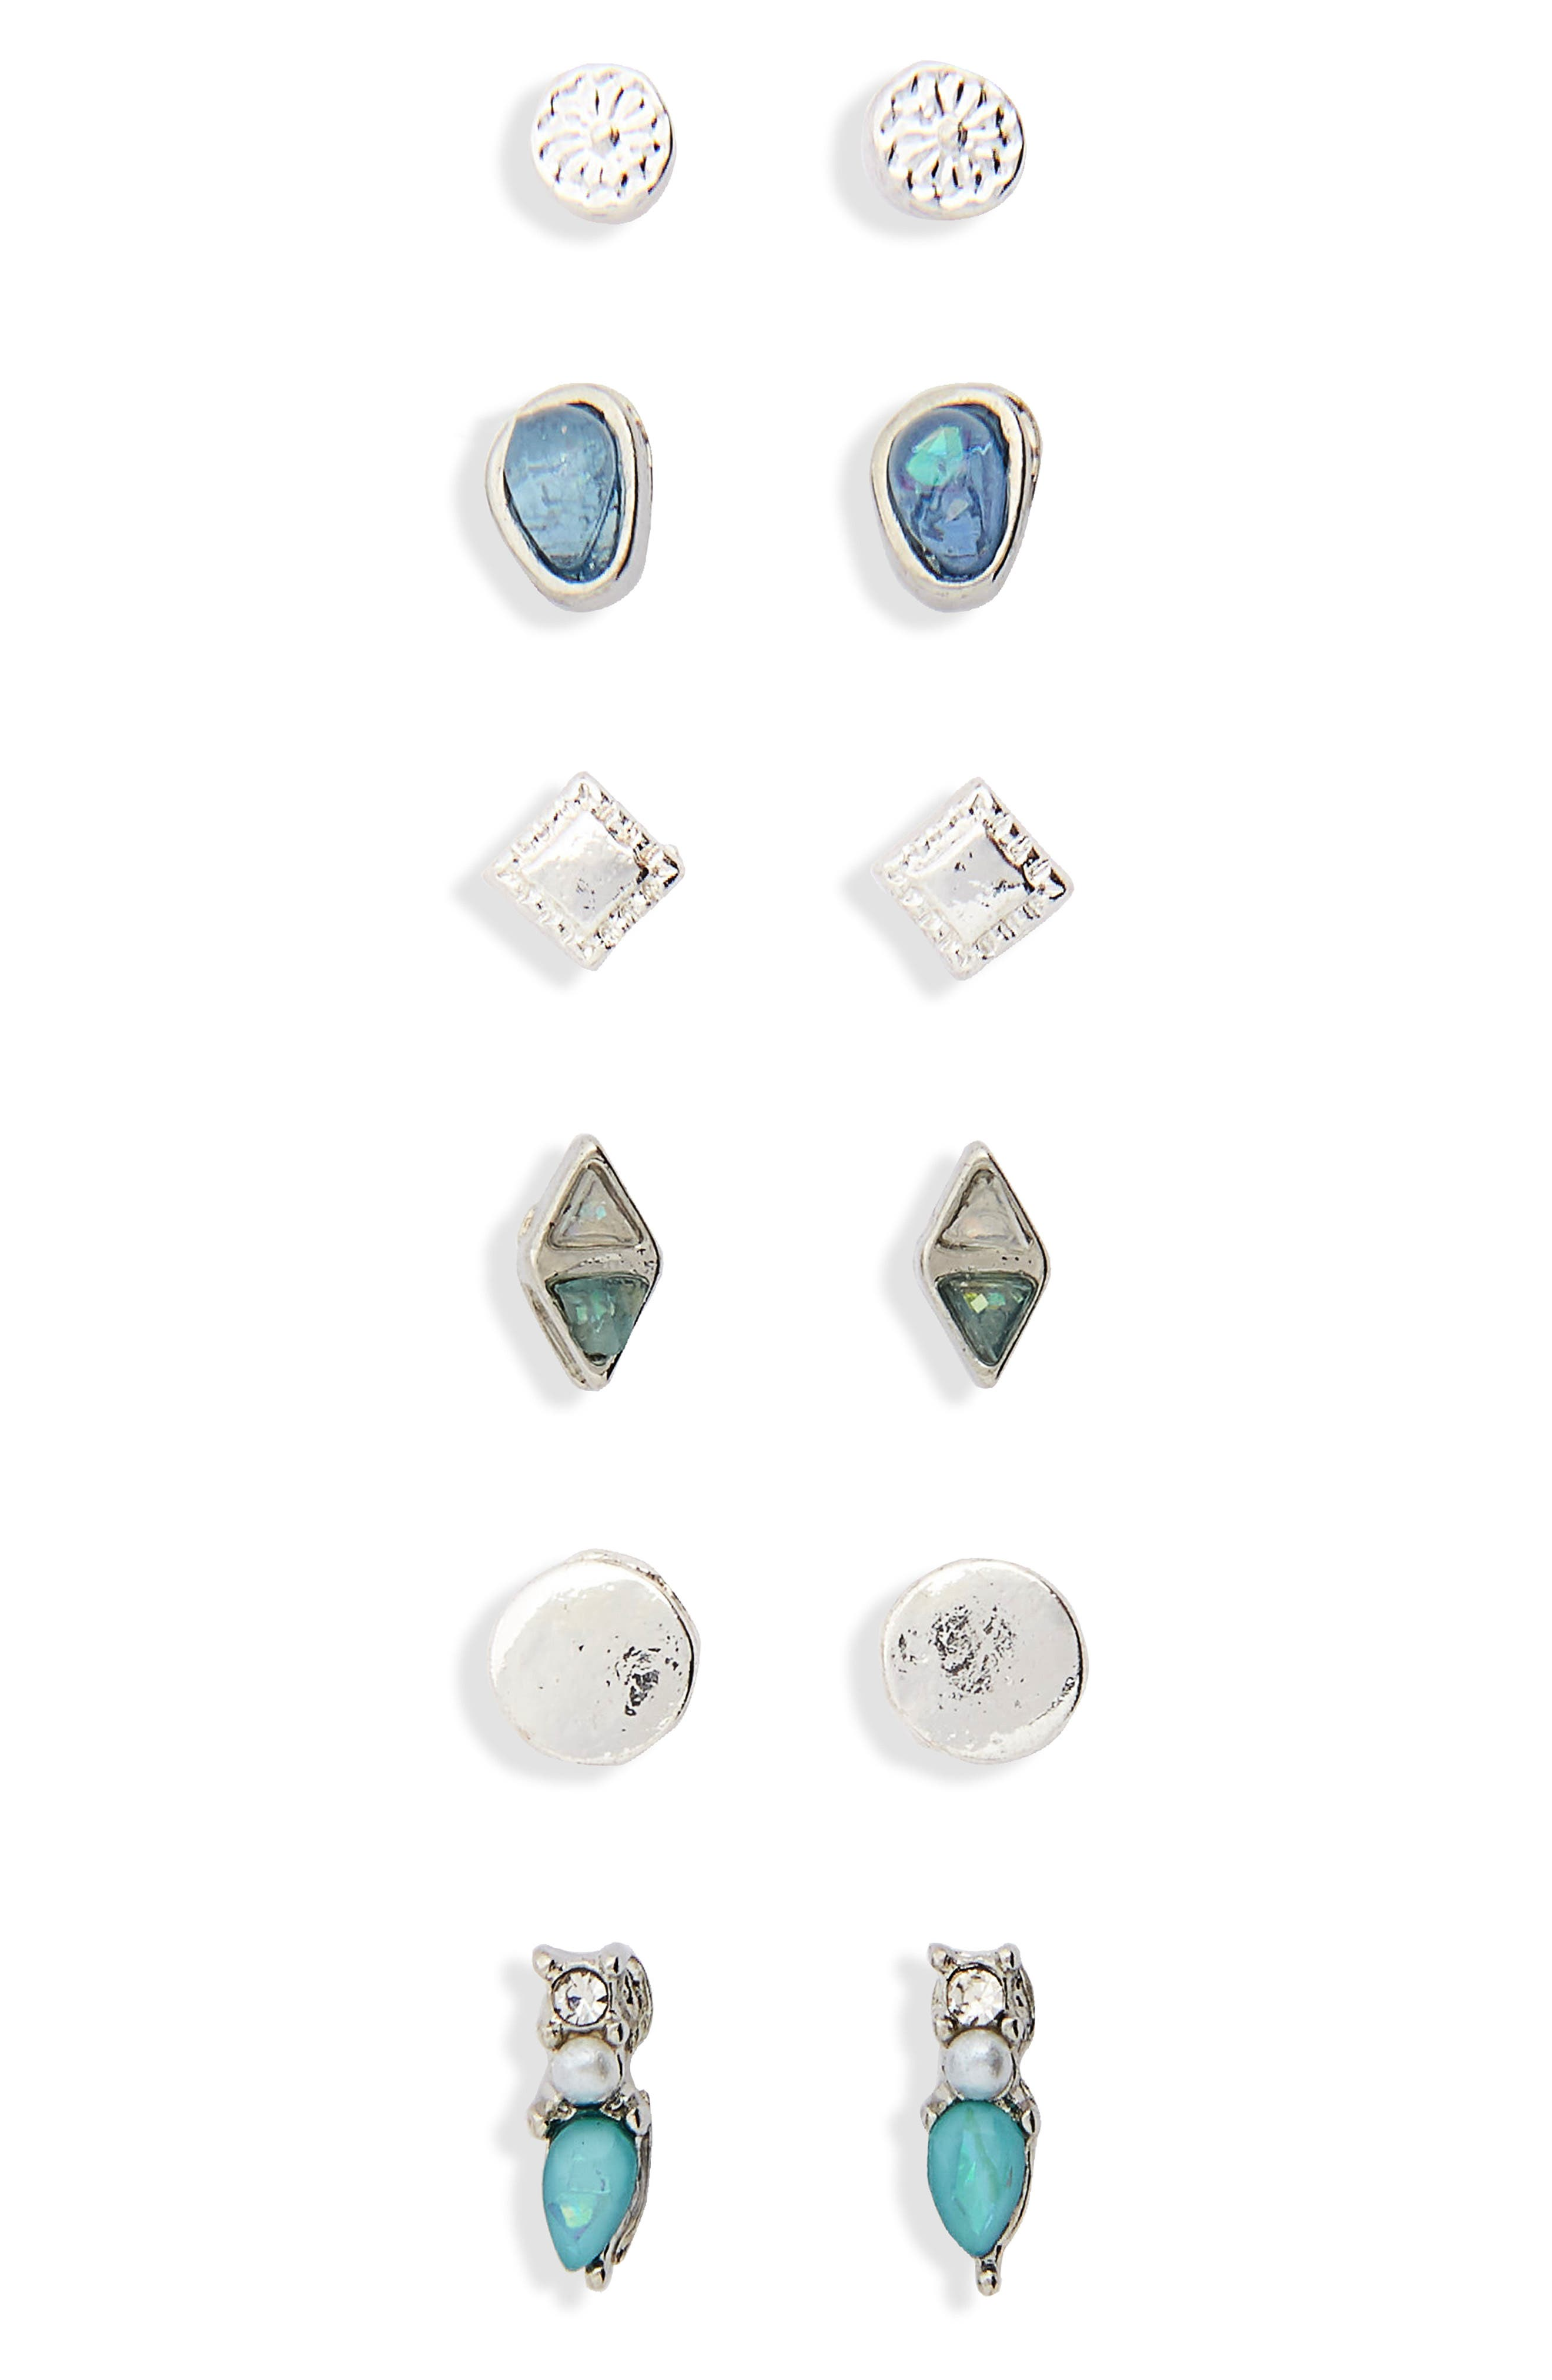 6-Pack Dainty Stone Stud Earrings,                             Main thumbnail 1, color,                             Silver/ Blue